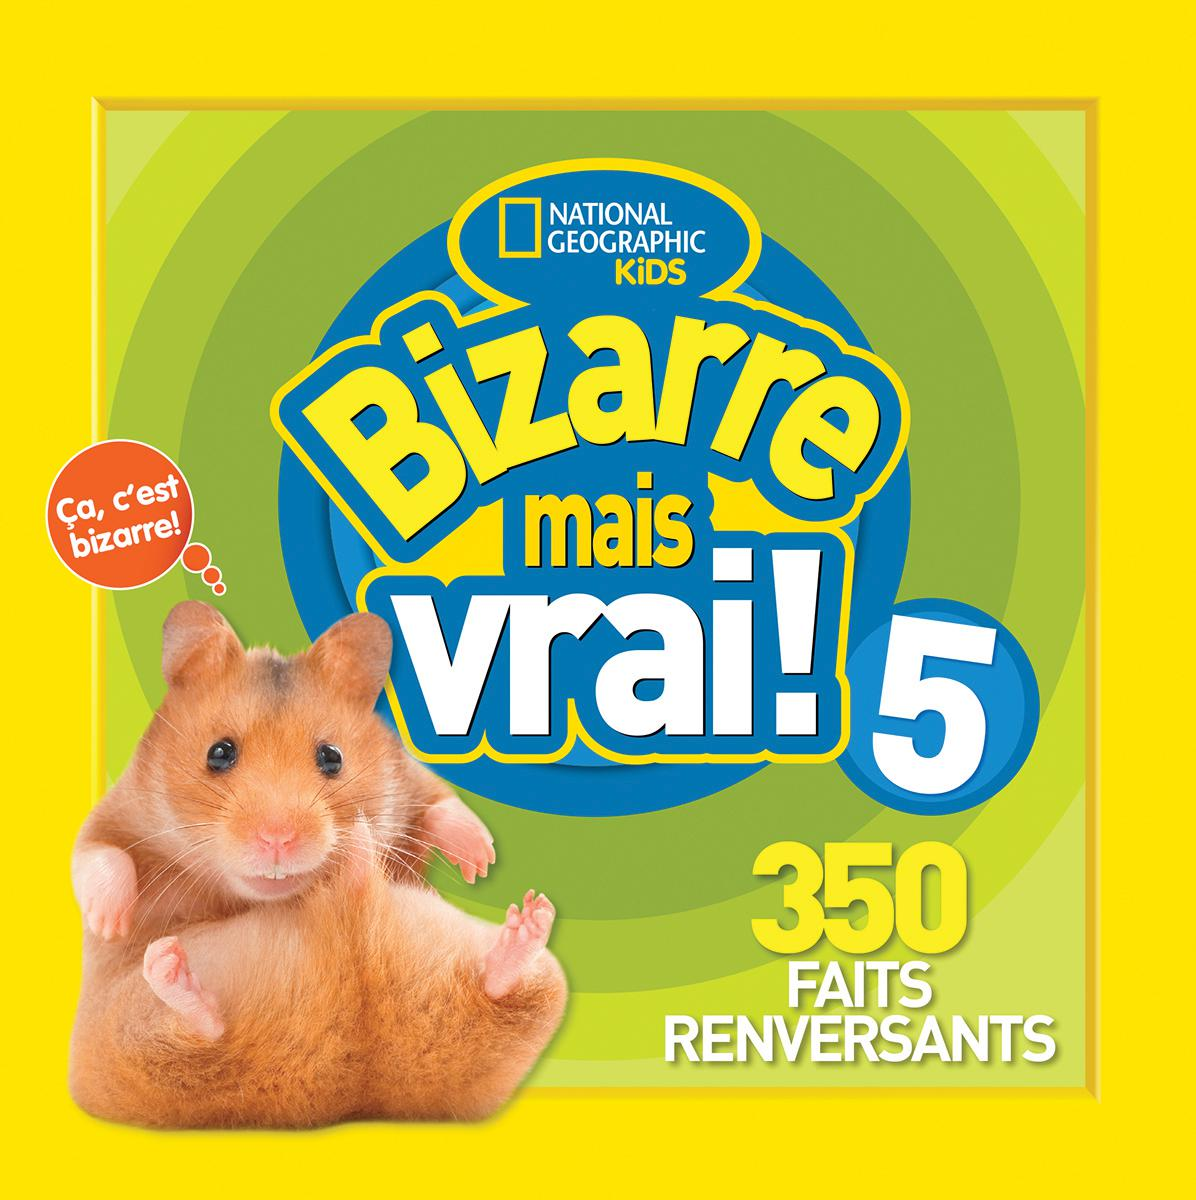 National Geographic Kids : Bizarre mais vrai! 5